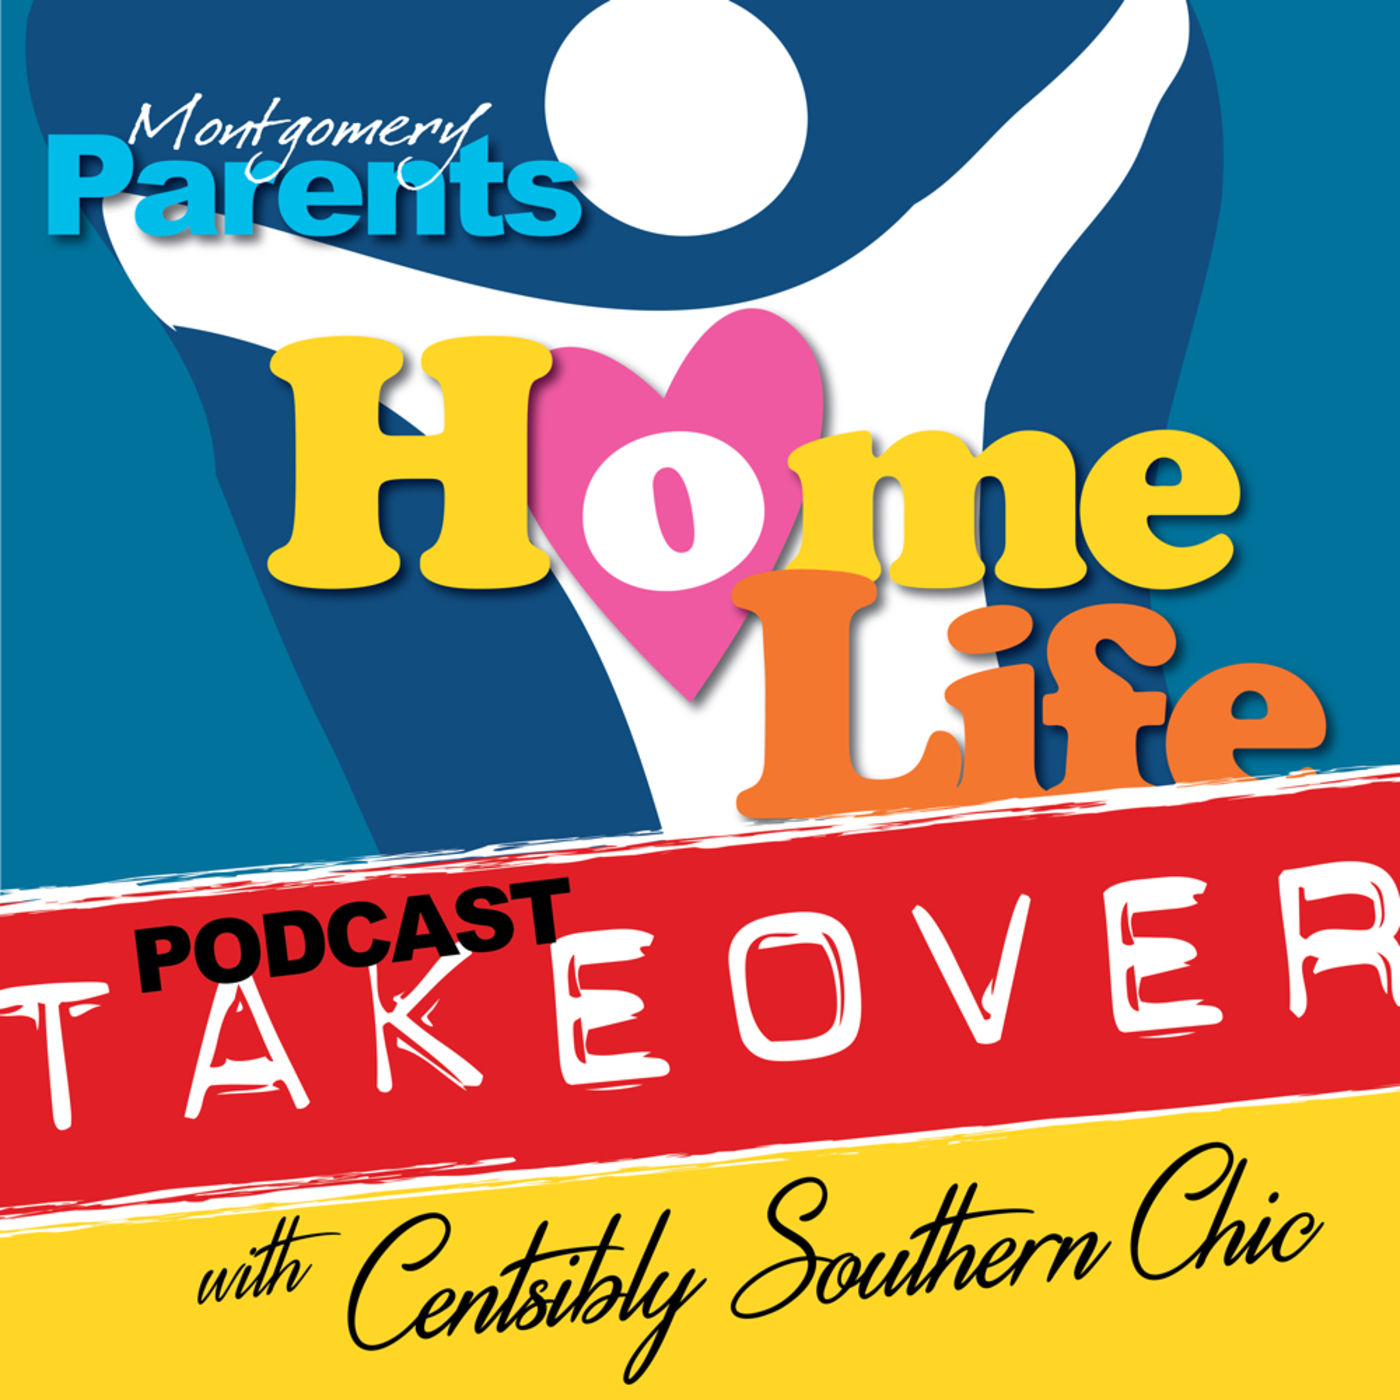 PODCAST TAKEOVER! with Centsibly Southern Chic to Discuss Spring Fashions